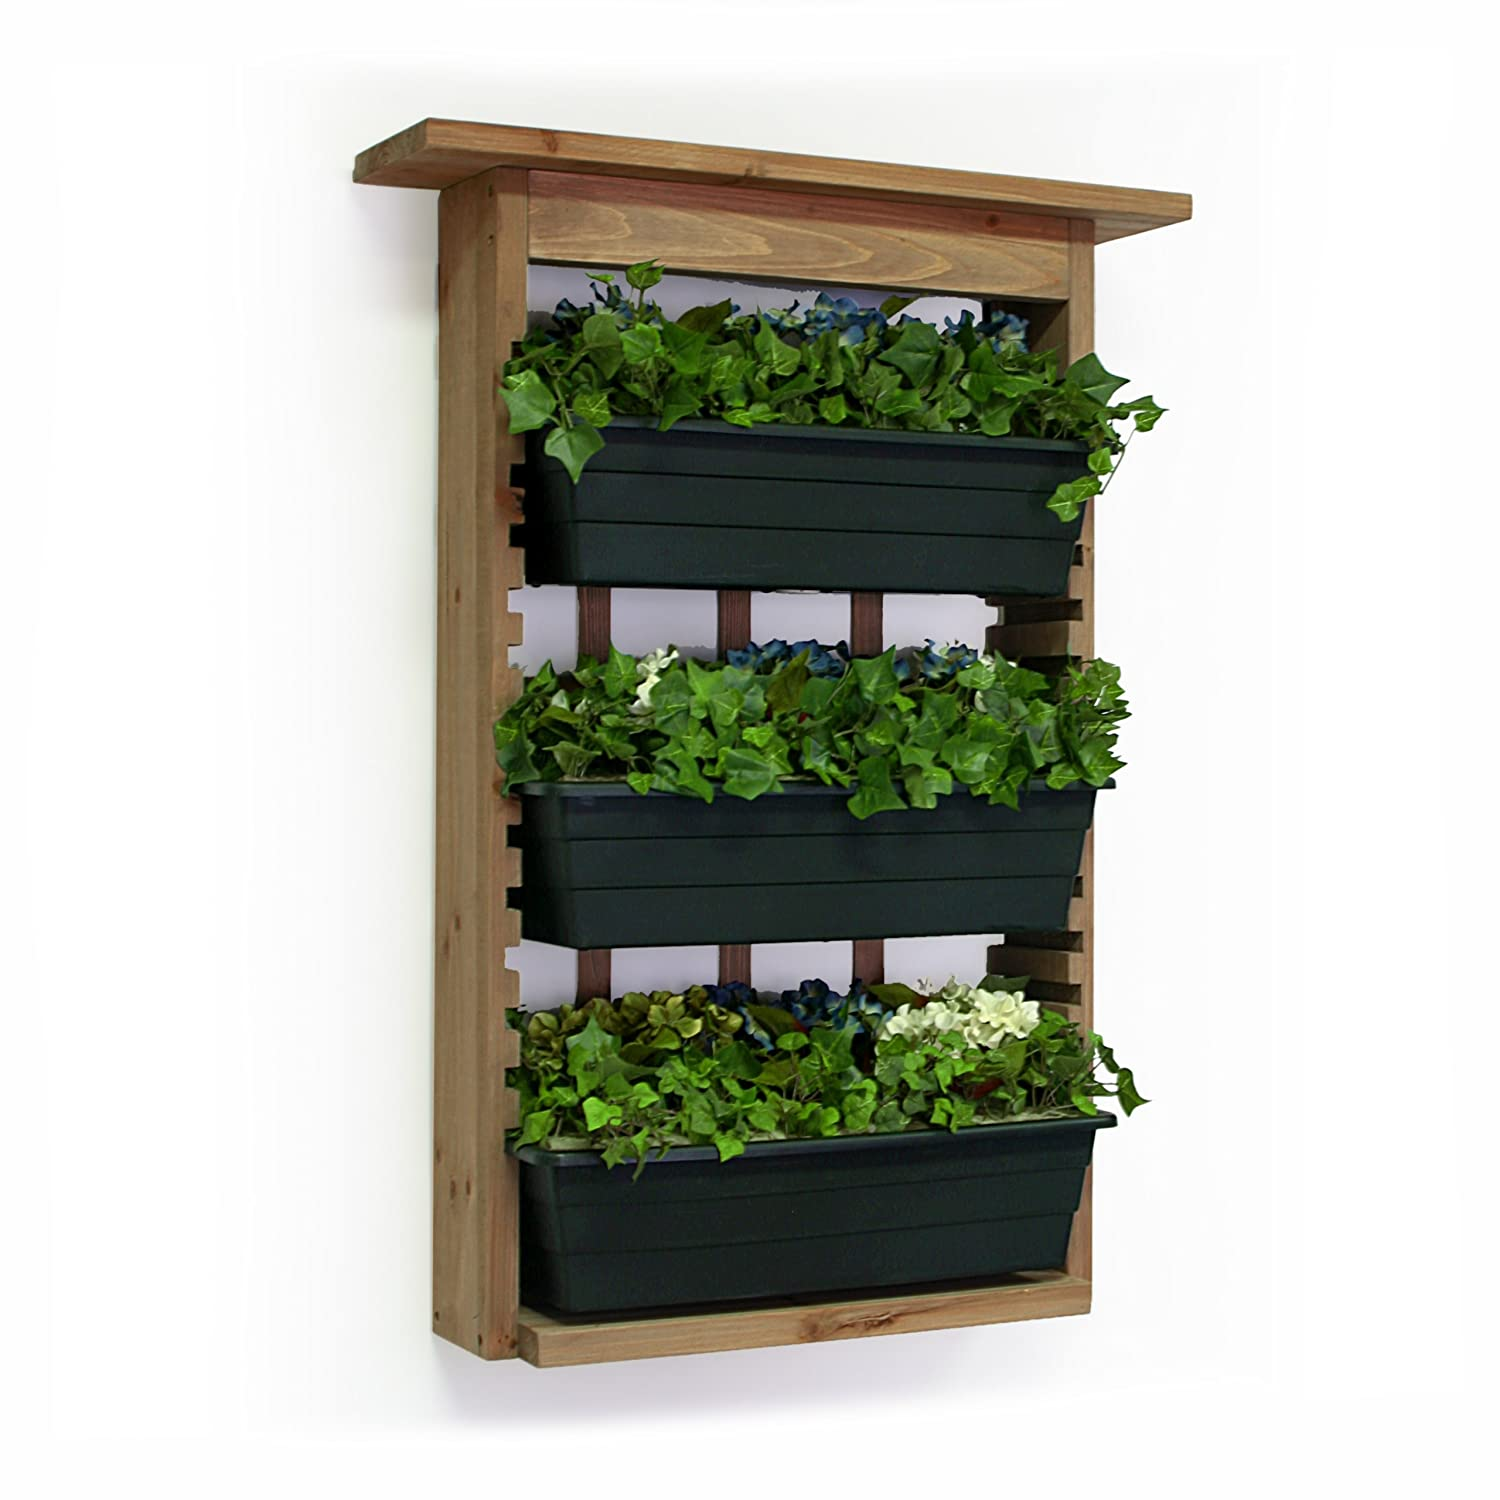 Amazon.com: Algreen 34002 Garden View, Vertical Living Wall Planter ...